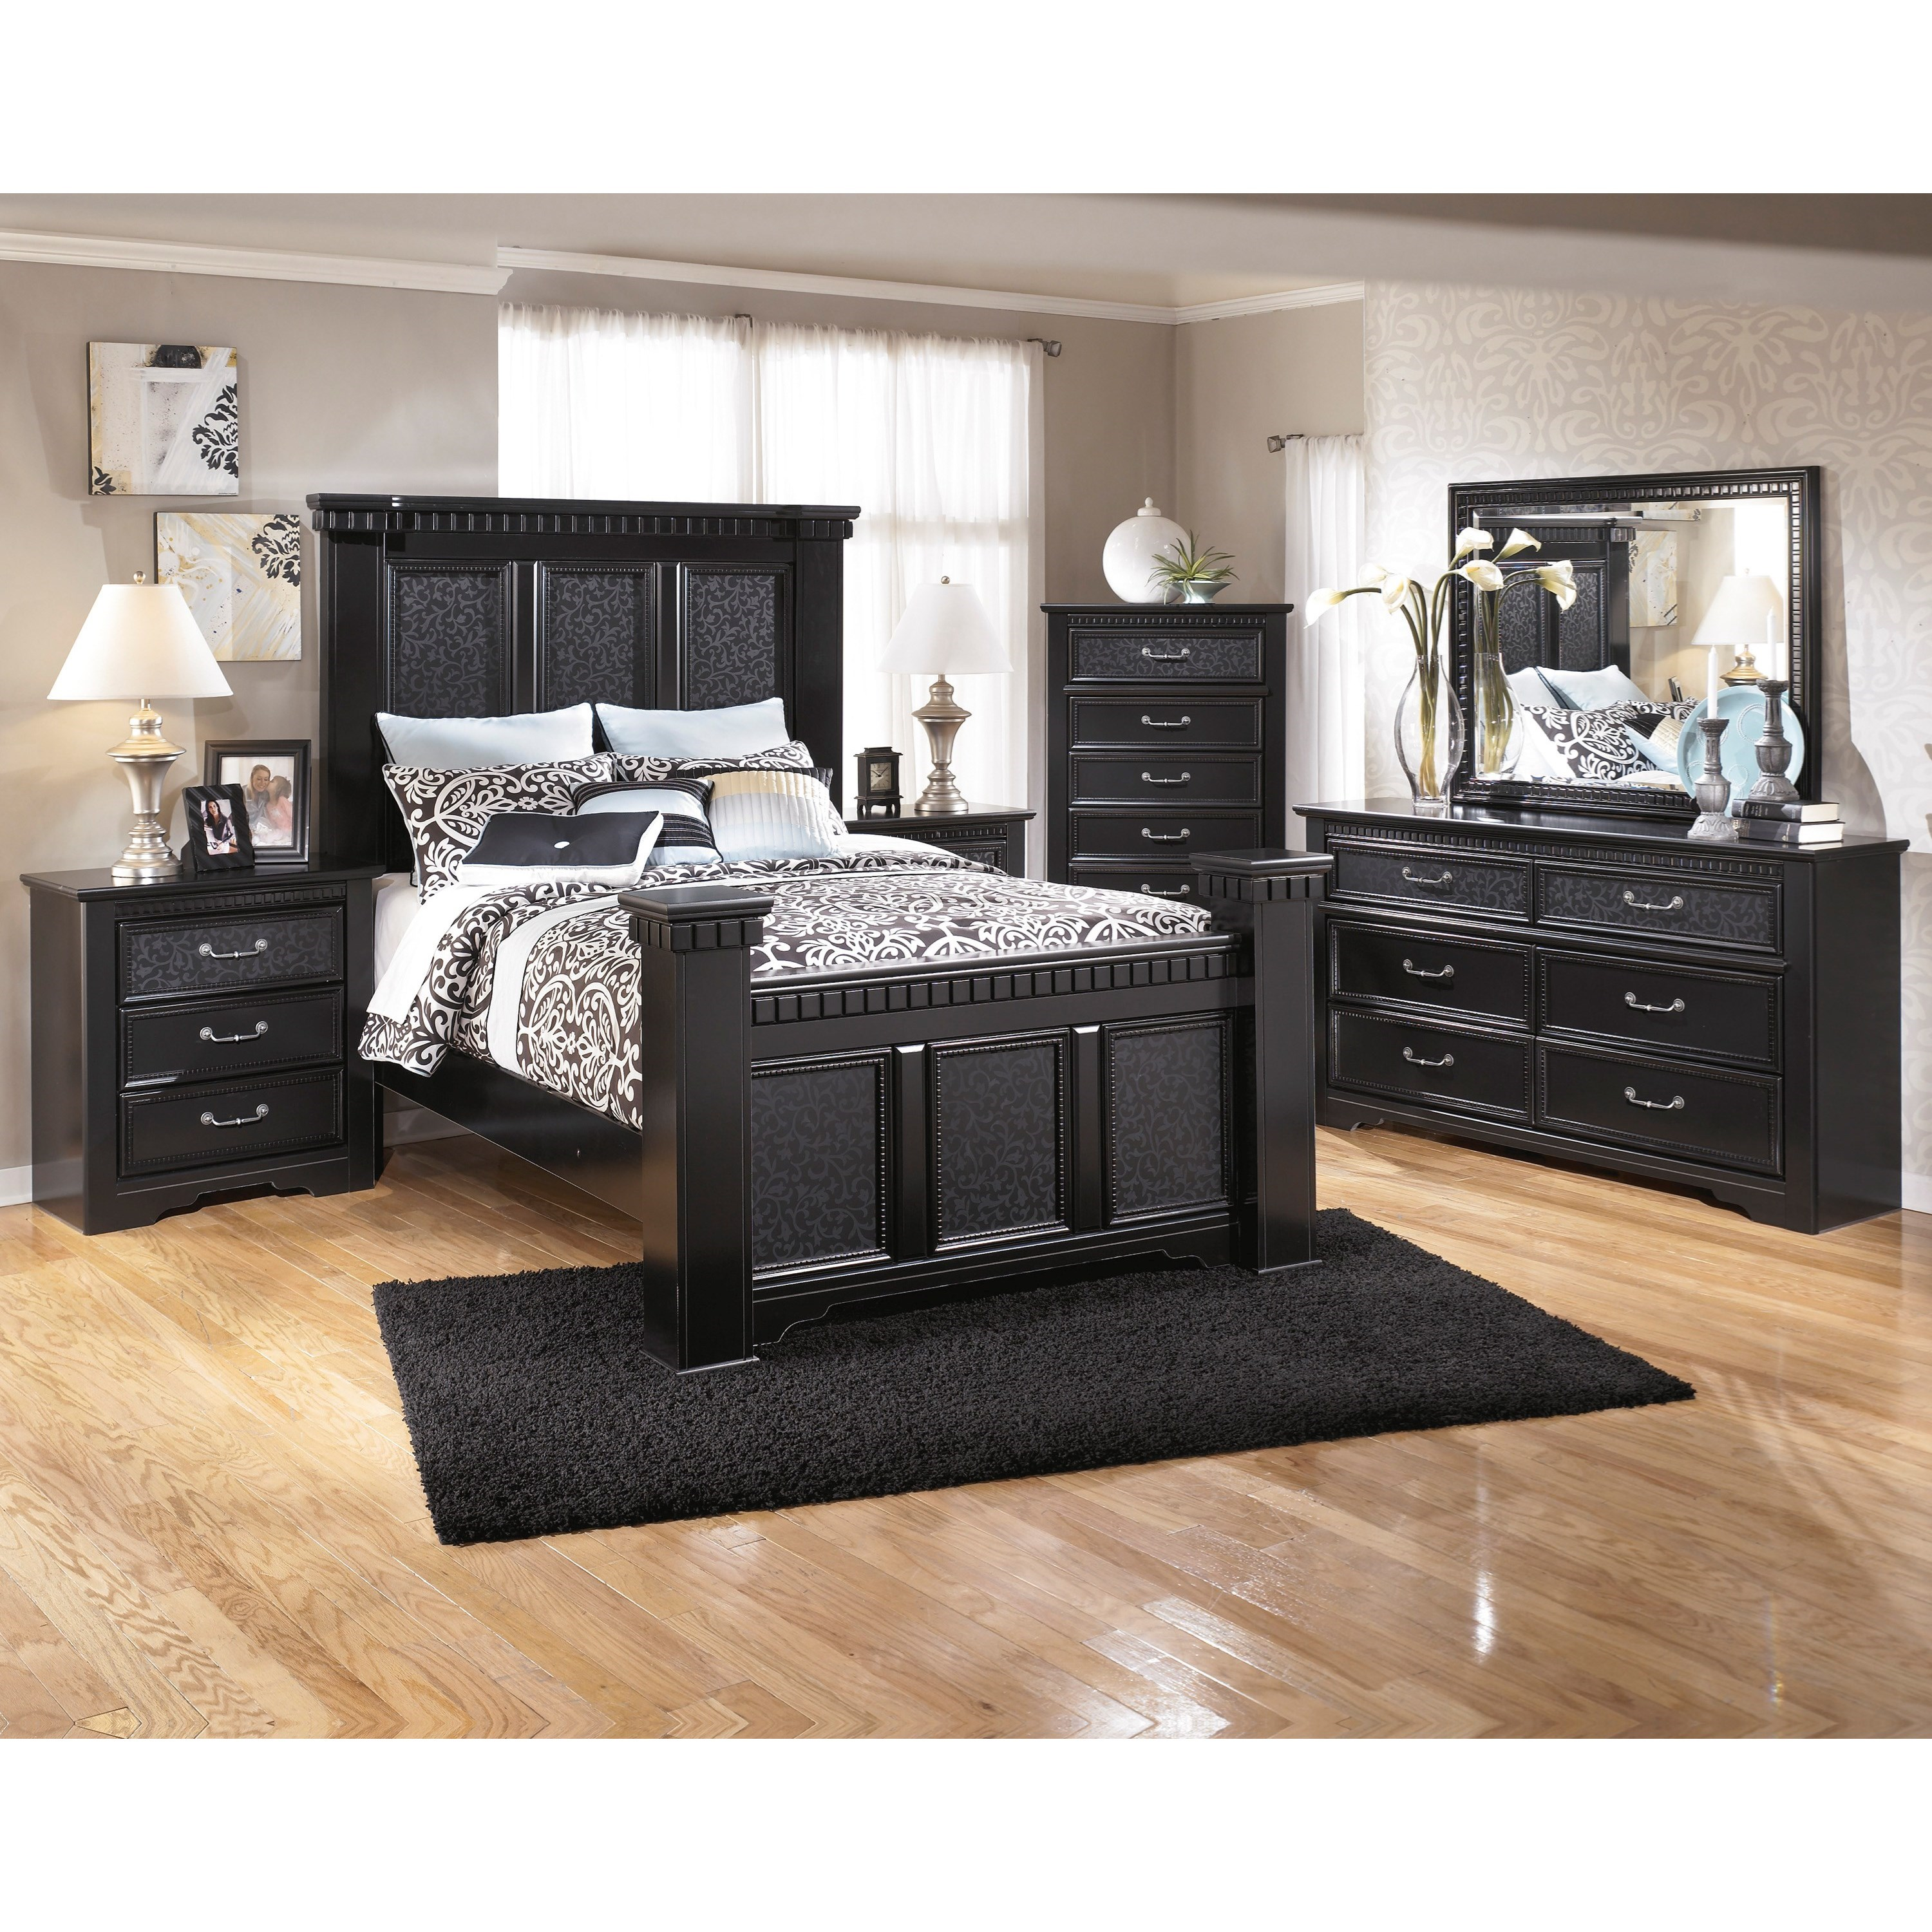 Signature Design by Ashley Cavallino Queen Bedroom Group - Item Number: B291 Q Bedroom Group 3